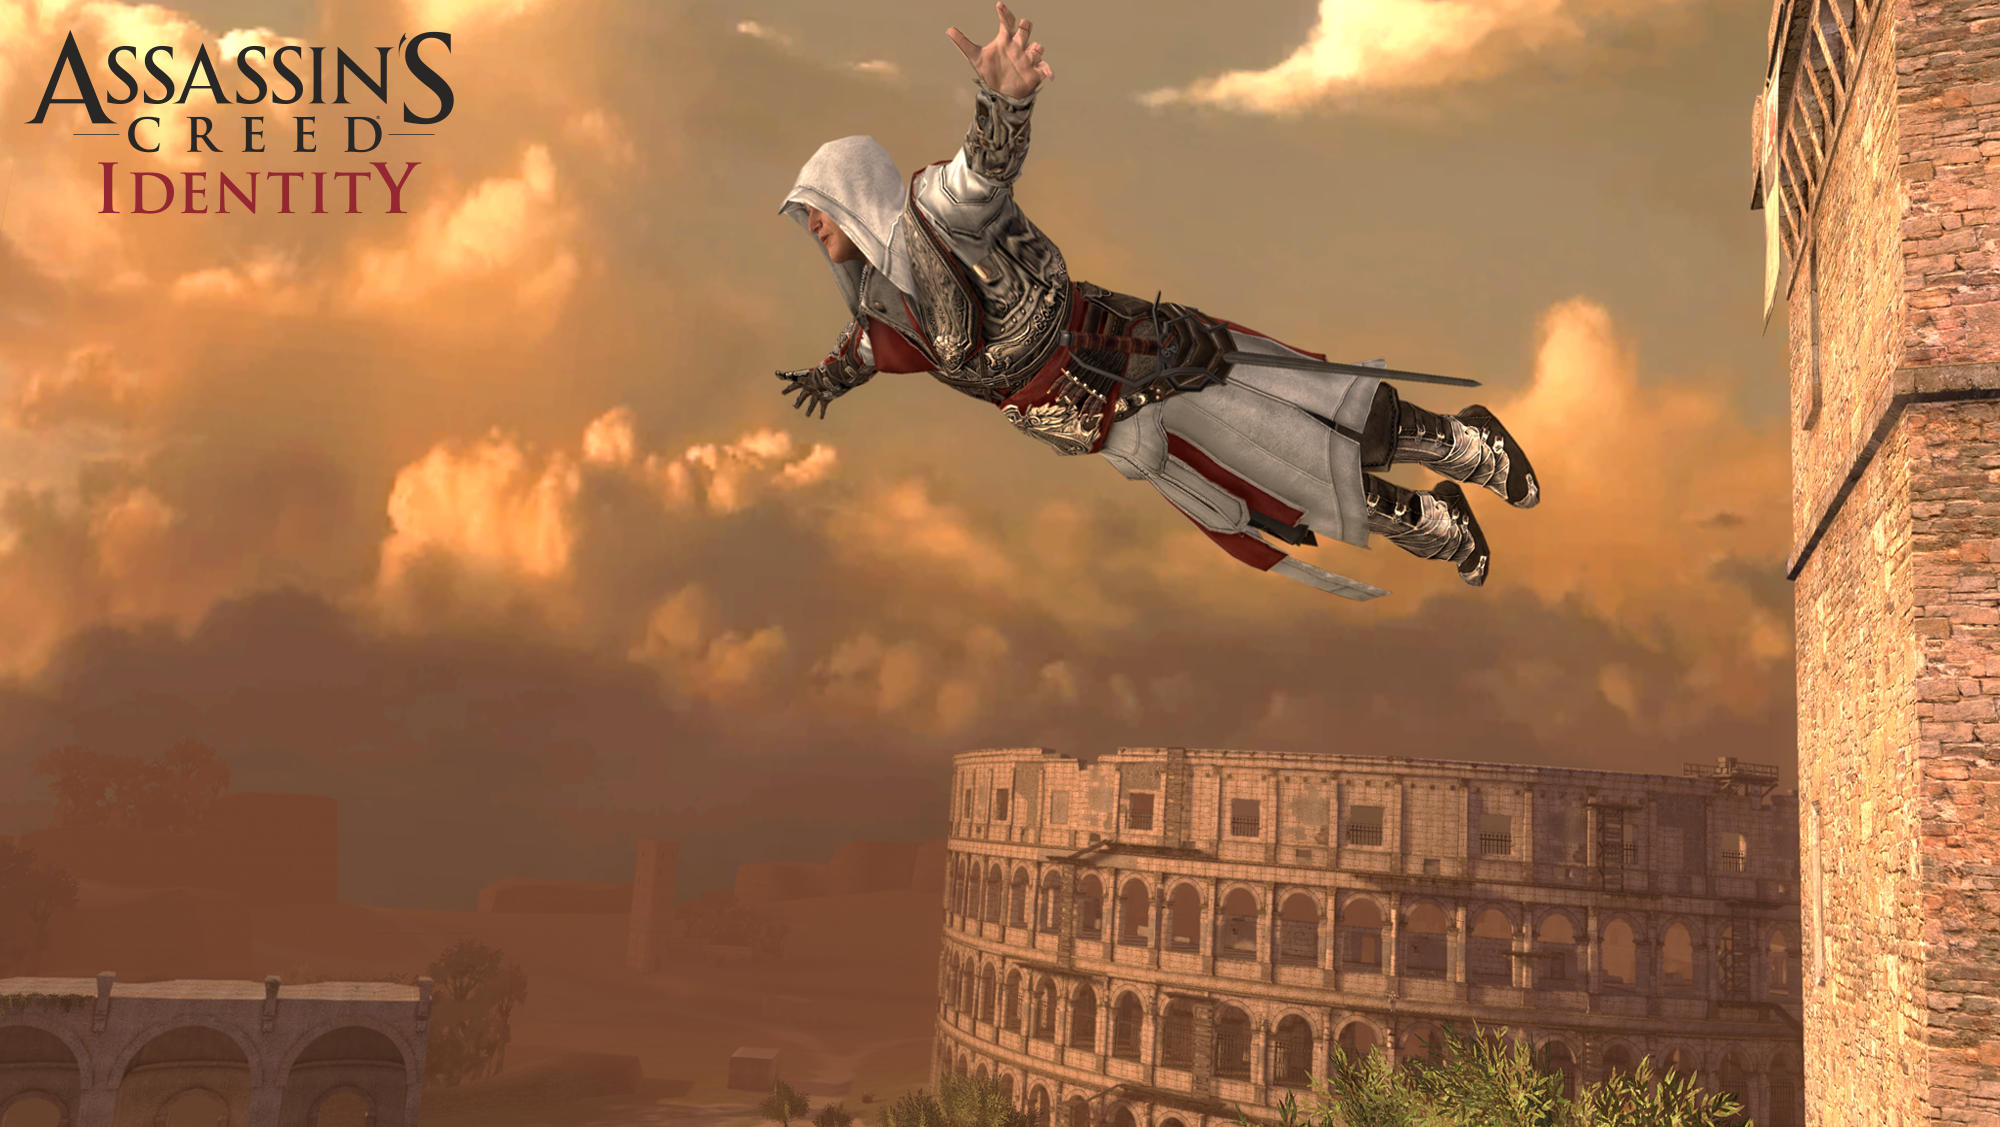 assassins creed identity (2)